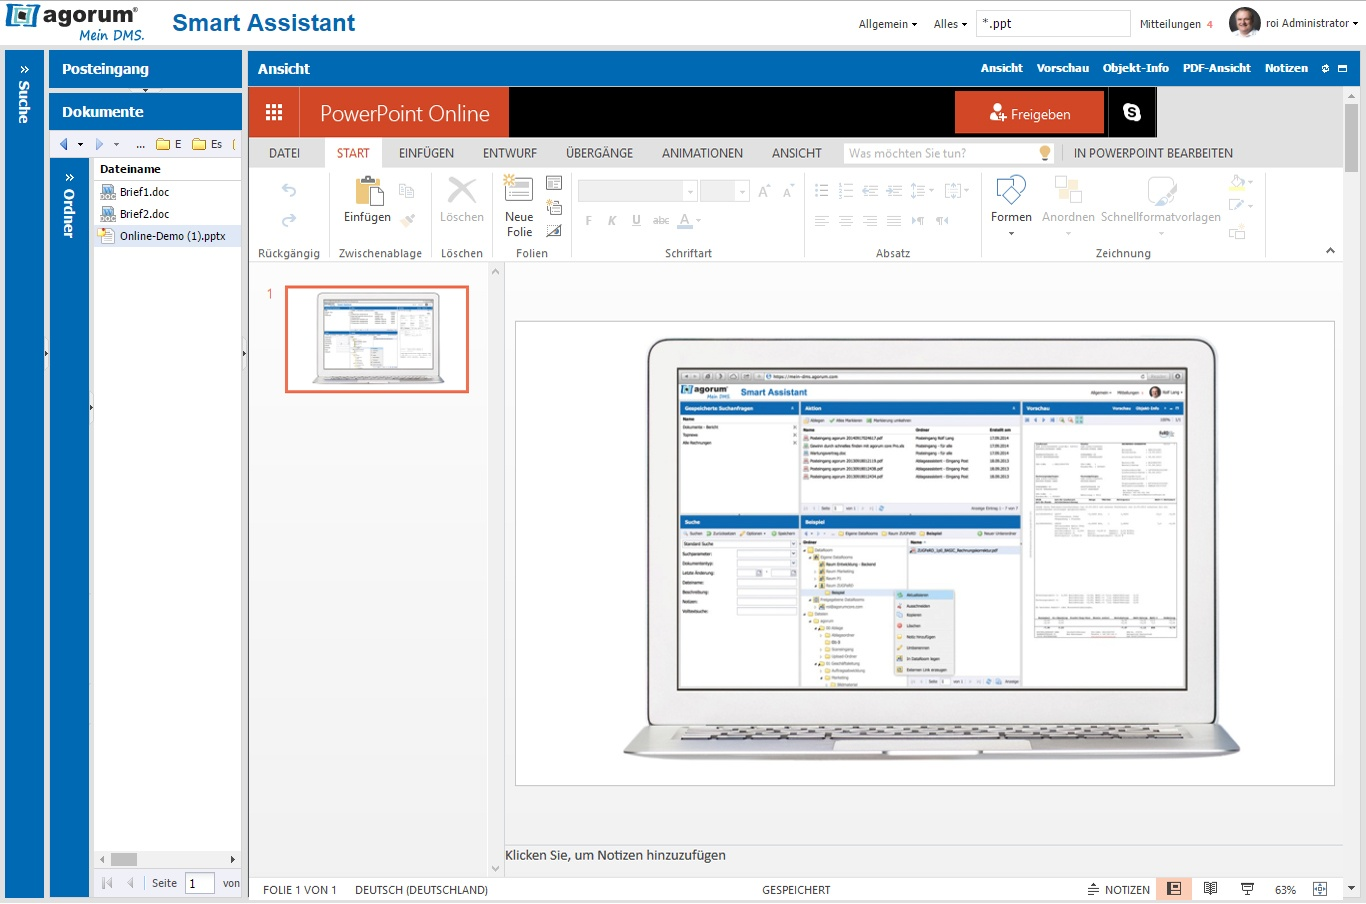 Microsoft Powerpoint Online im agorum® Smart Assistant